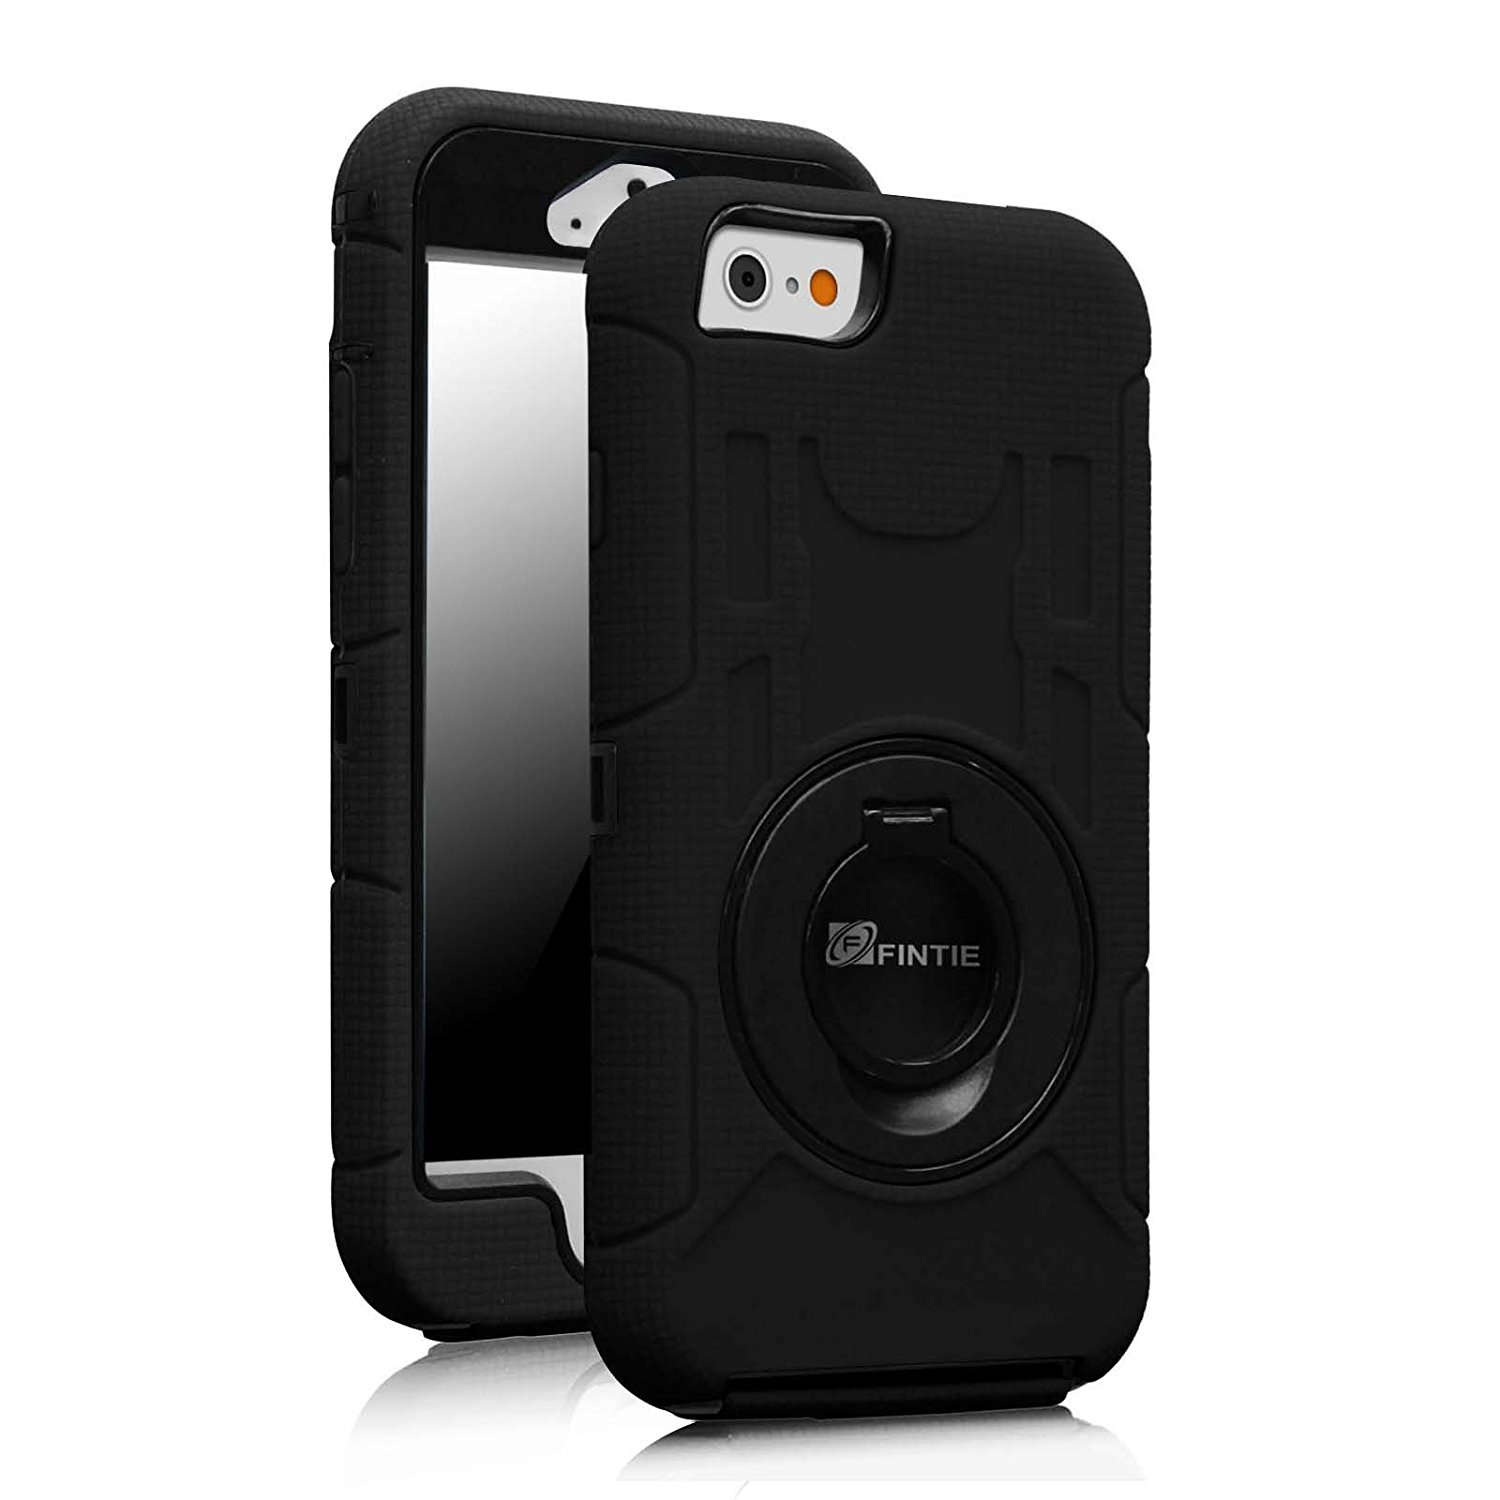 Fintie iPhone 6S Case - [Commander Series] Three Layer Hard Shell Cover Holster with Built-in Rotating Stand and Belt Swivel Clip for Apple iPhone 6 / iPhone 6s (4.7-inch), Black